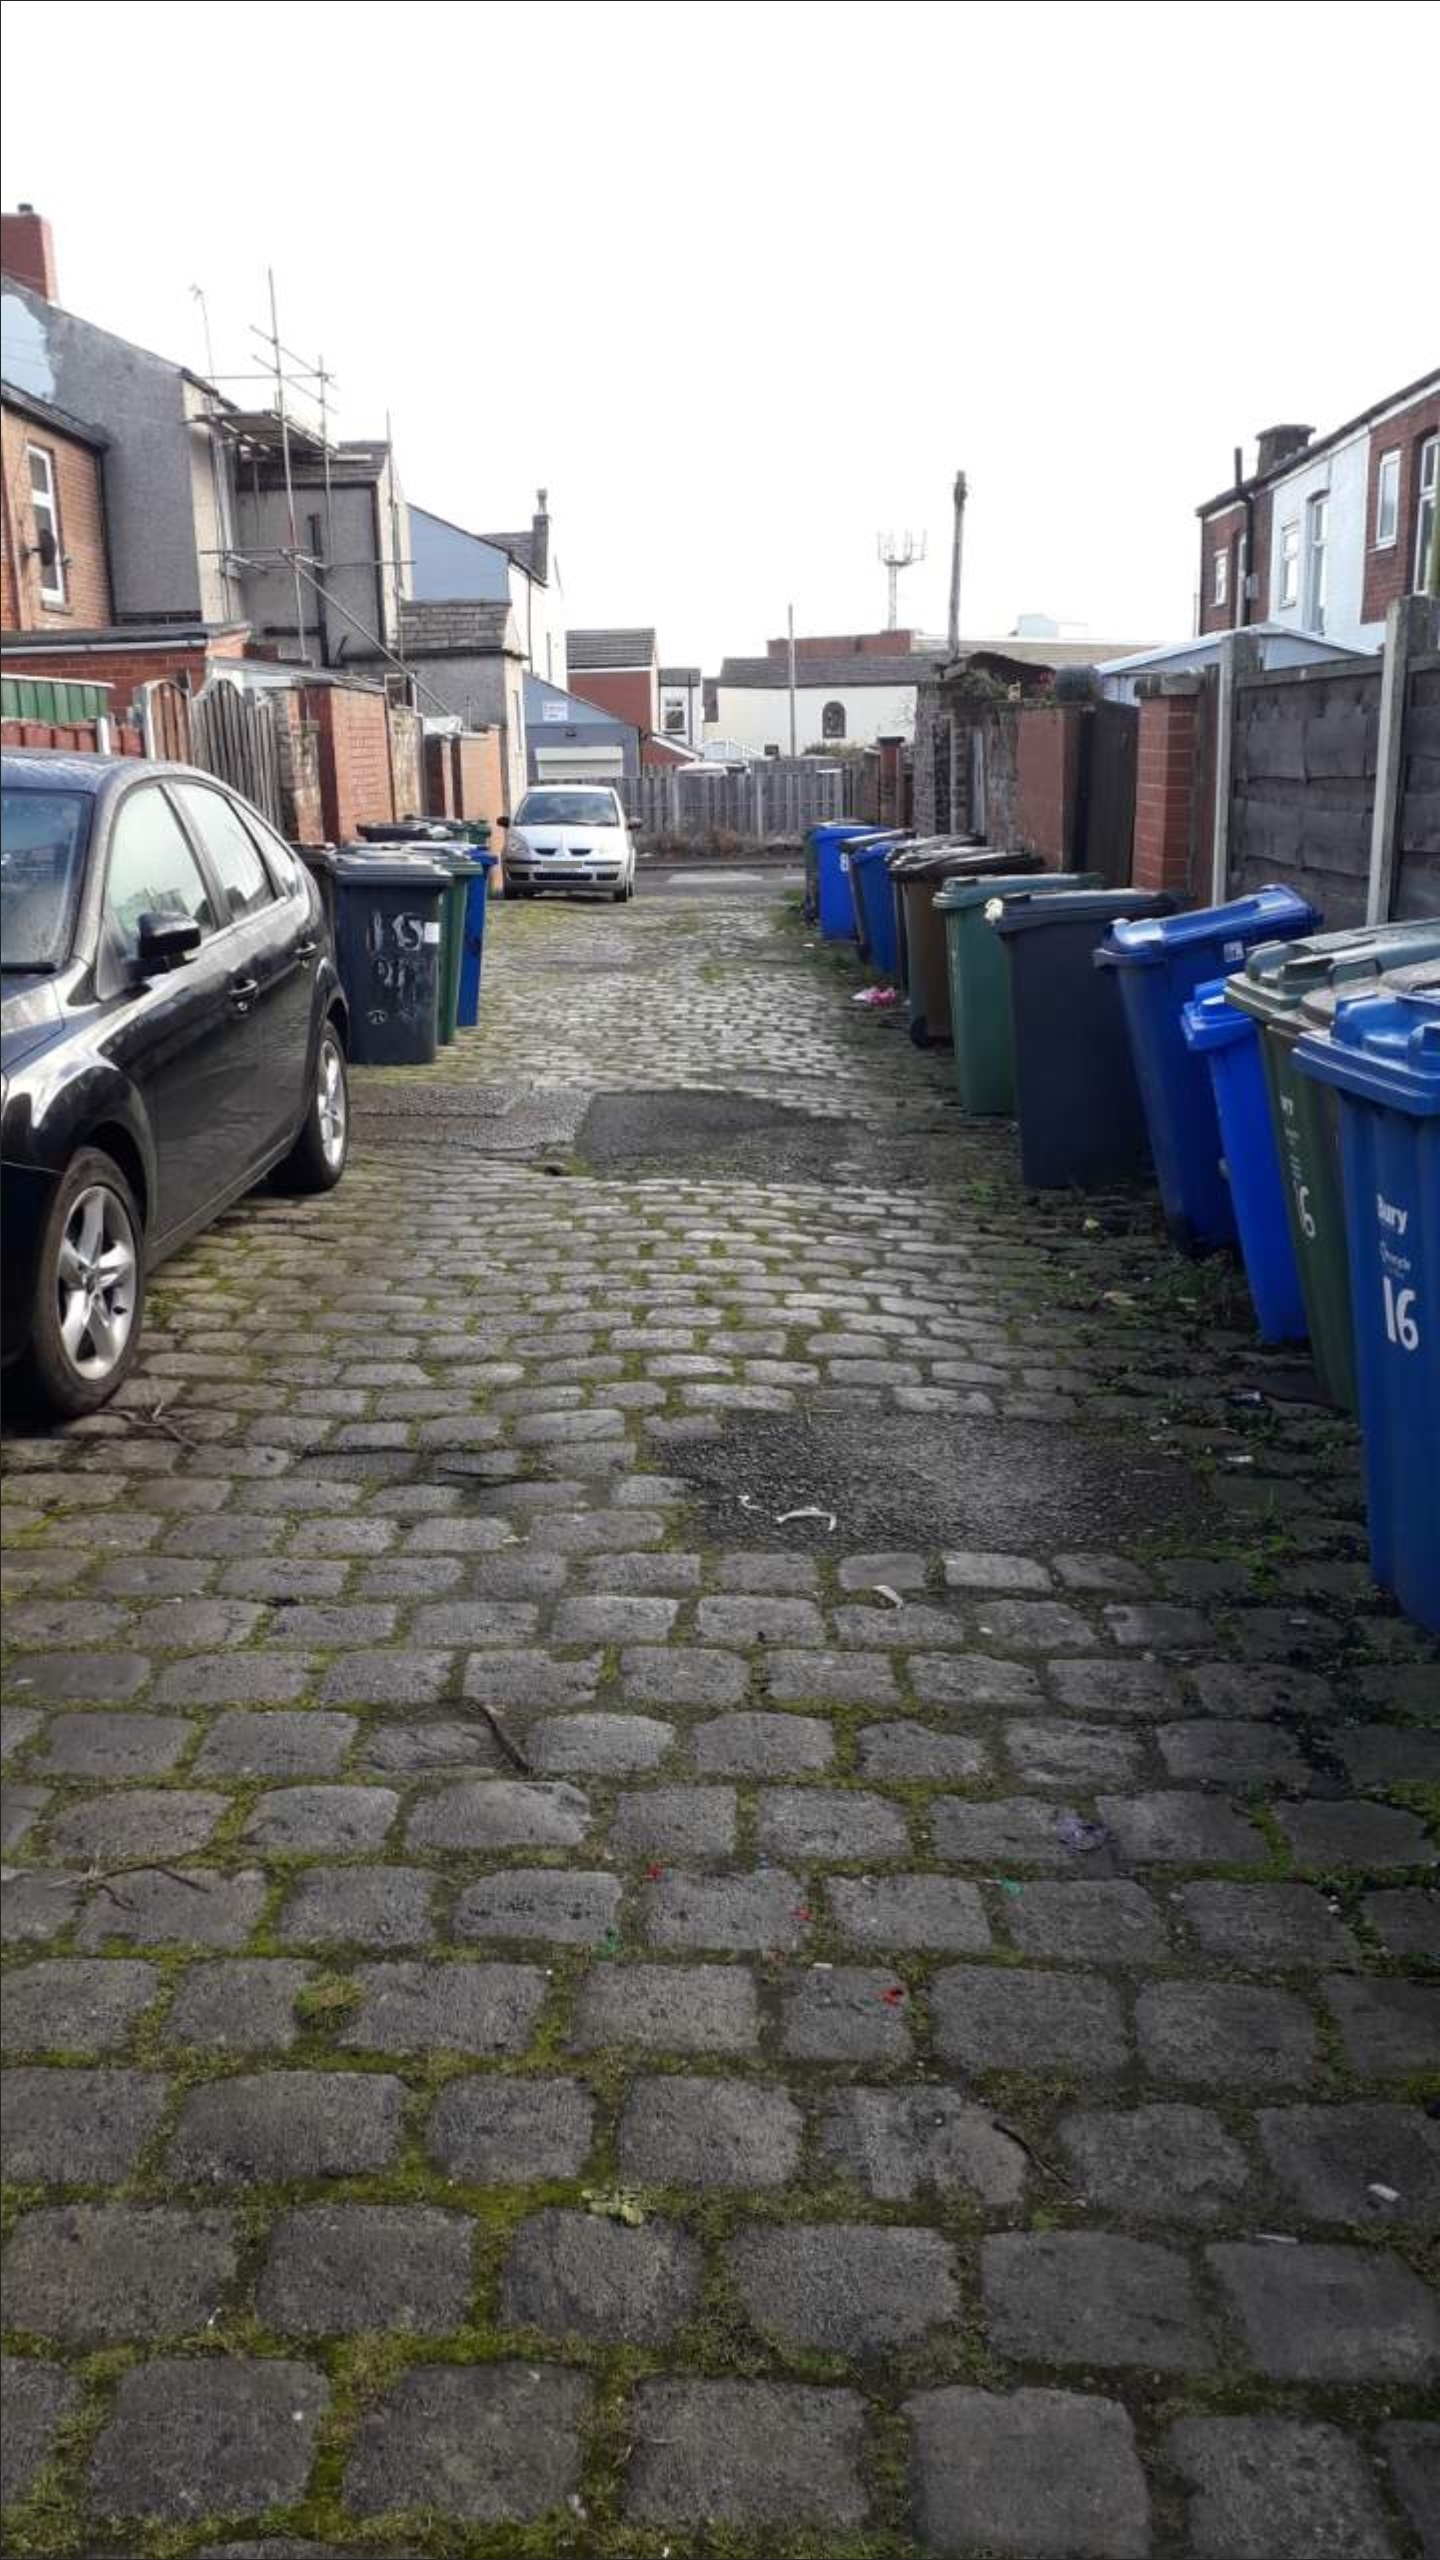 'Risk of injury' halts door-to-door bin collection